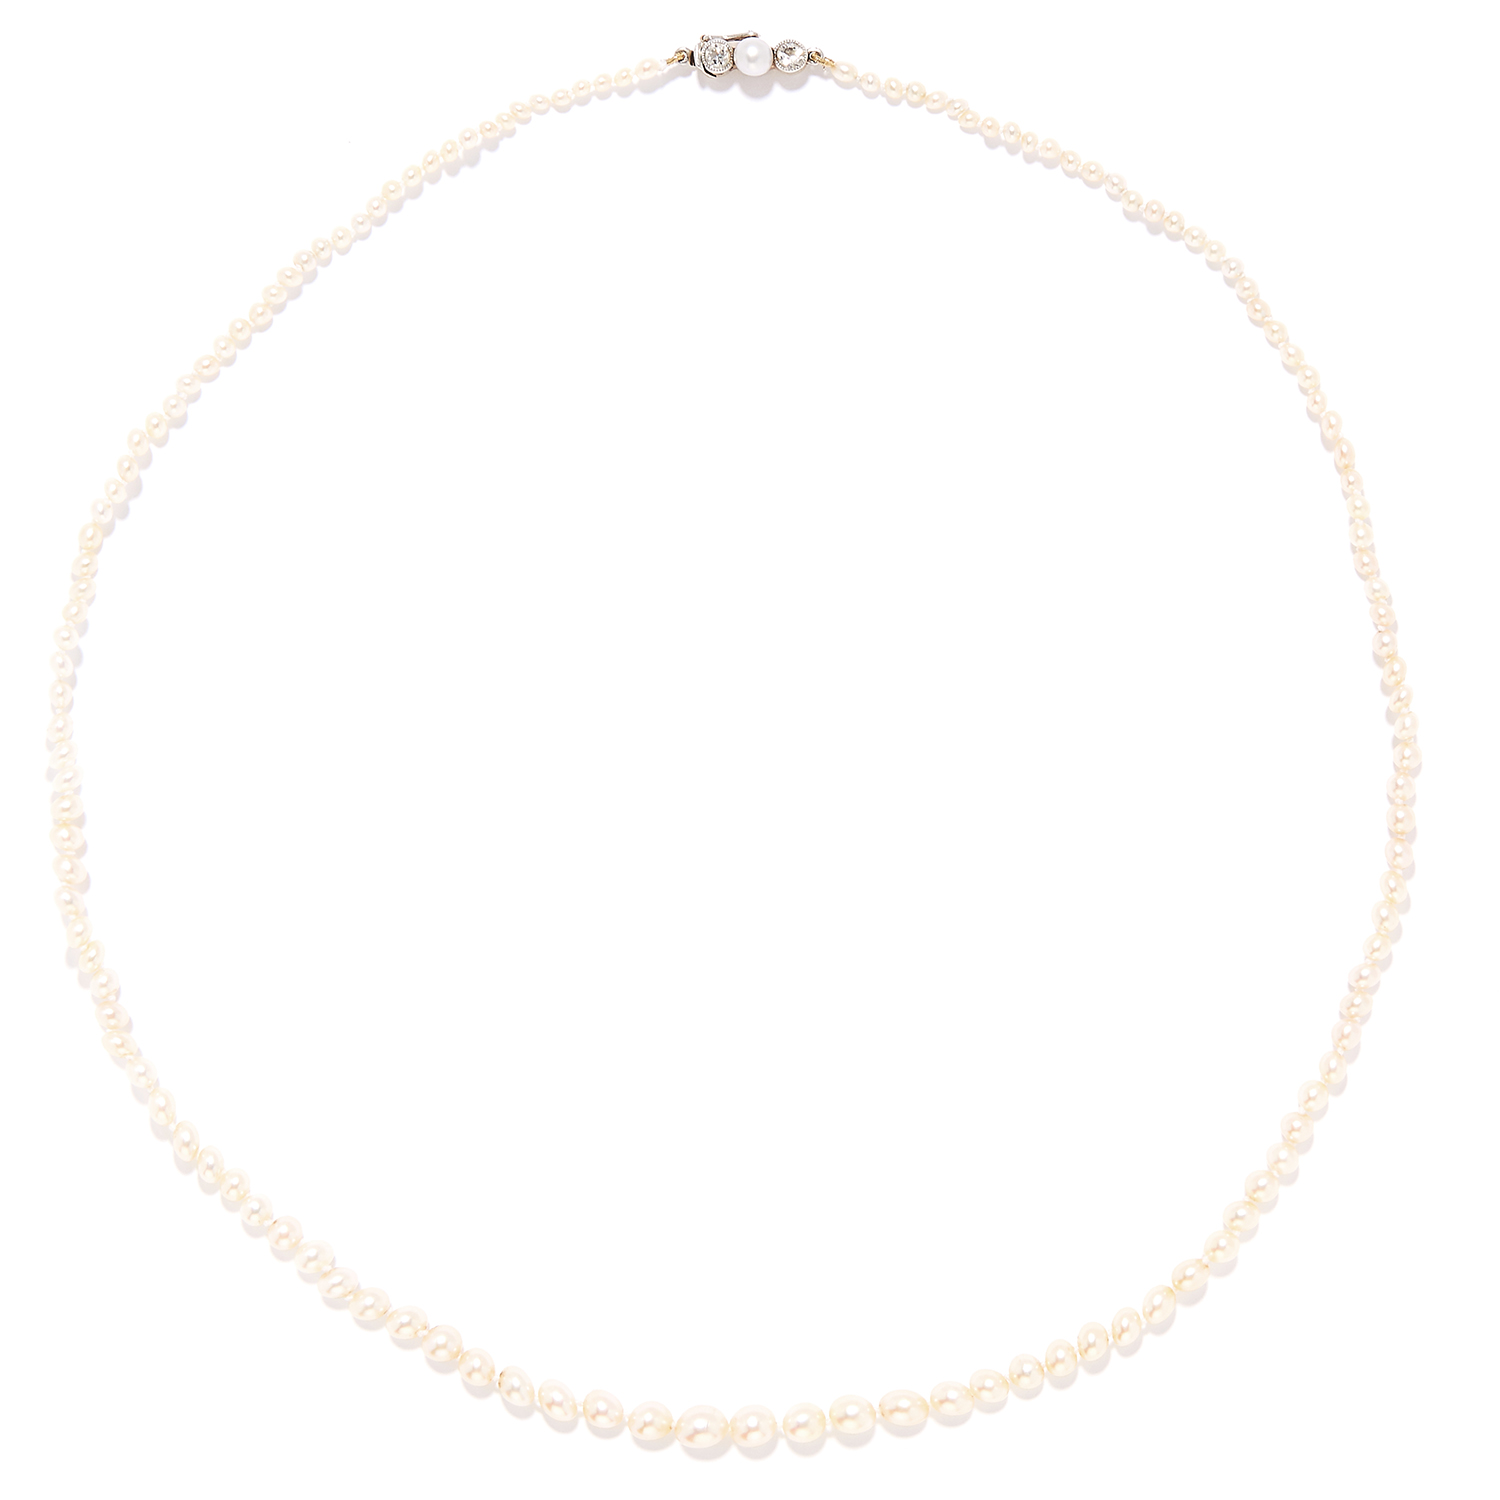 PEARL AND DIAMOND BEAD NECKLACE in yellow gold, set with a single strand of pearls ranging from 2.